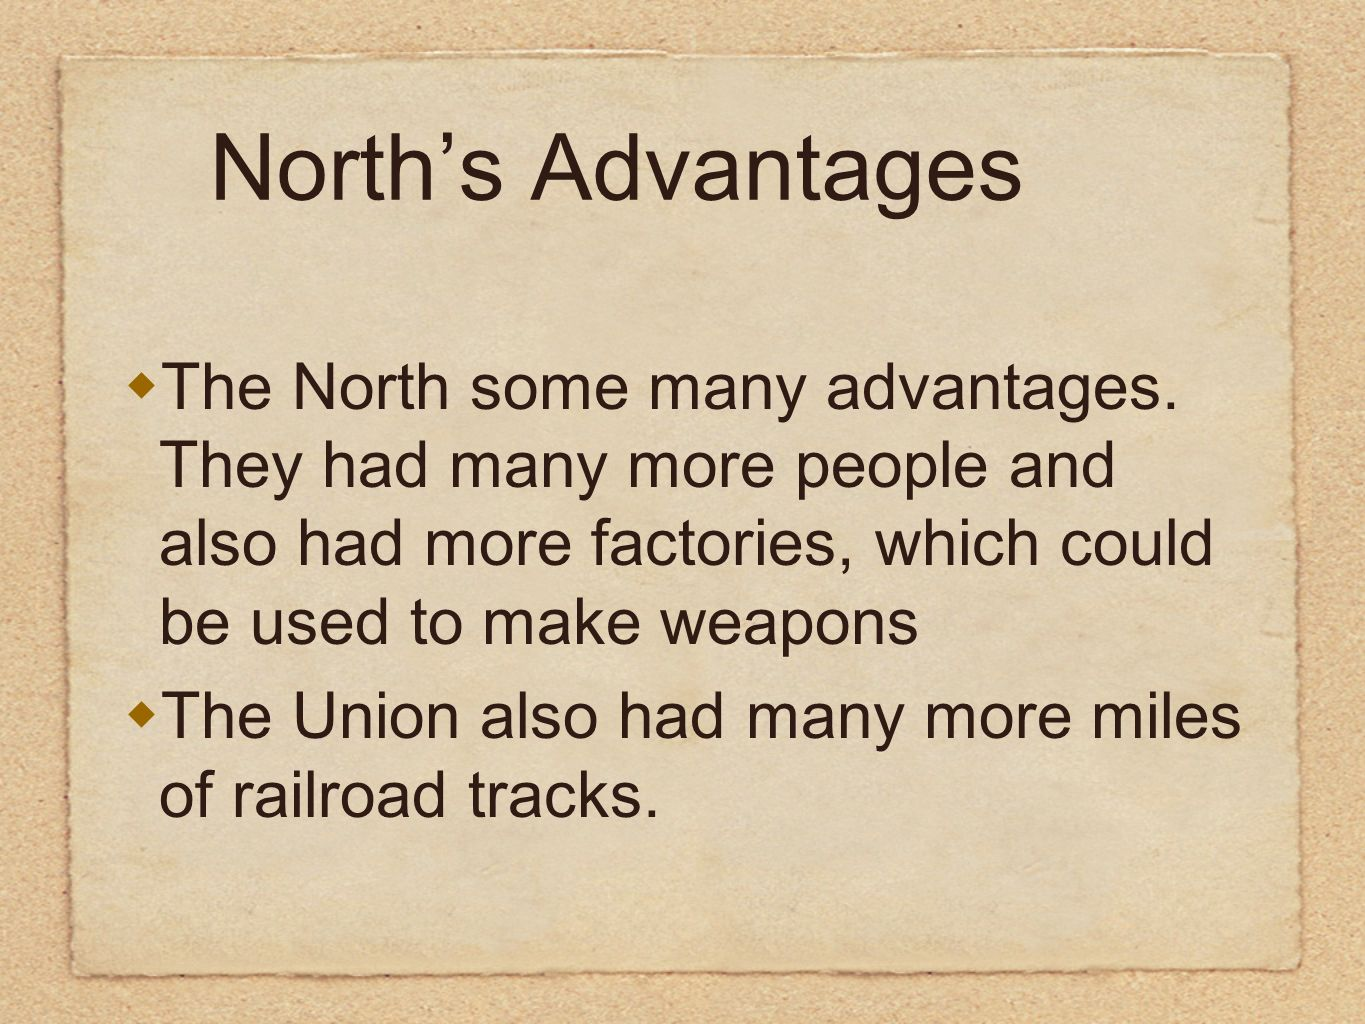 North's Advantages The North some many advantages. They had many more people and also had more factories, which could be used to make weapons.